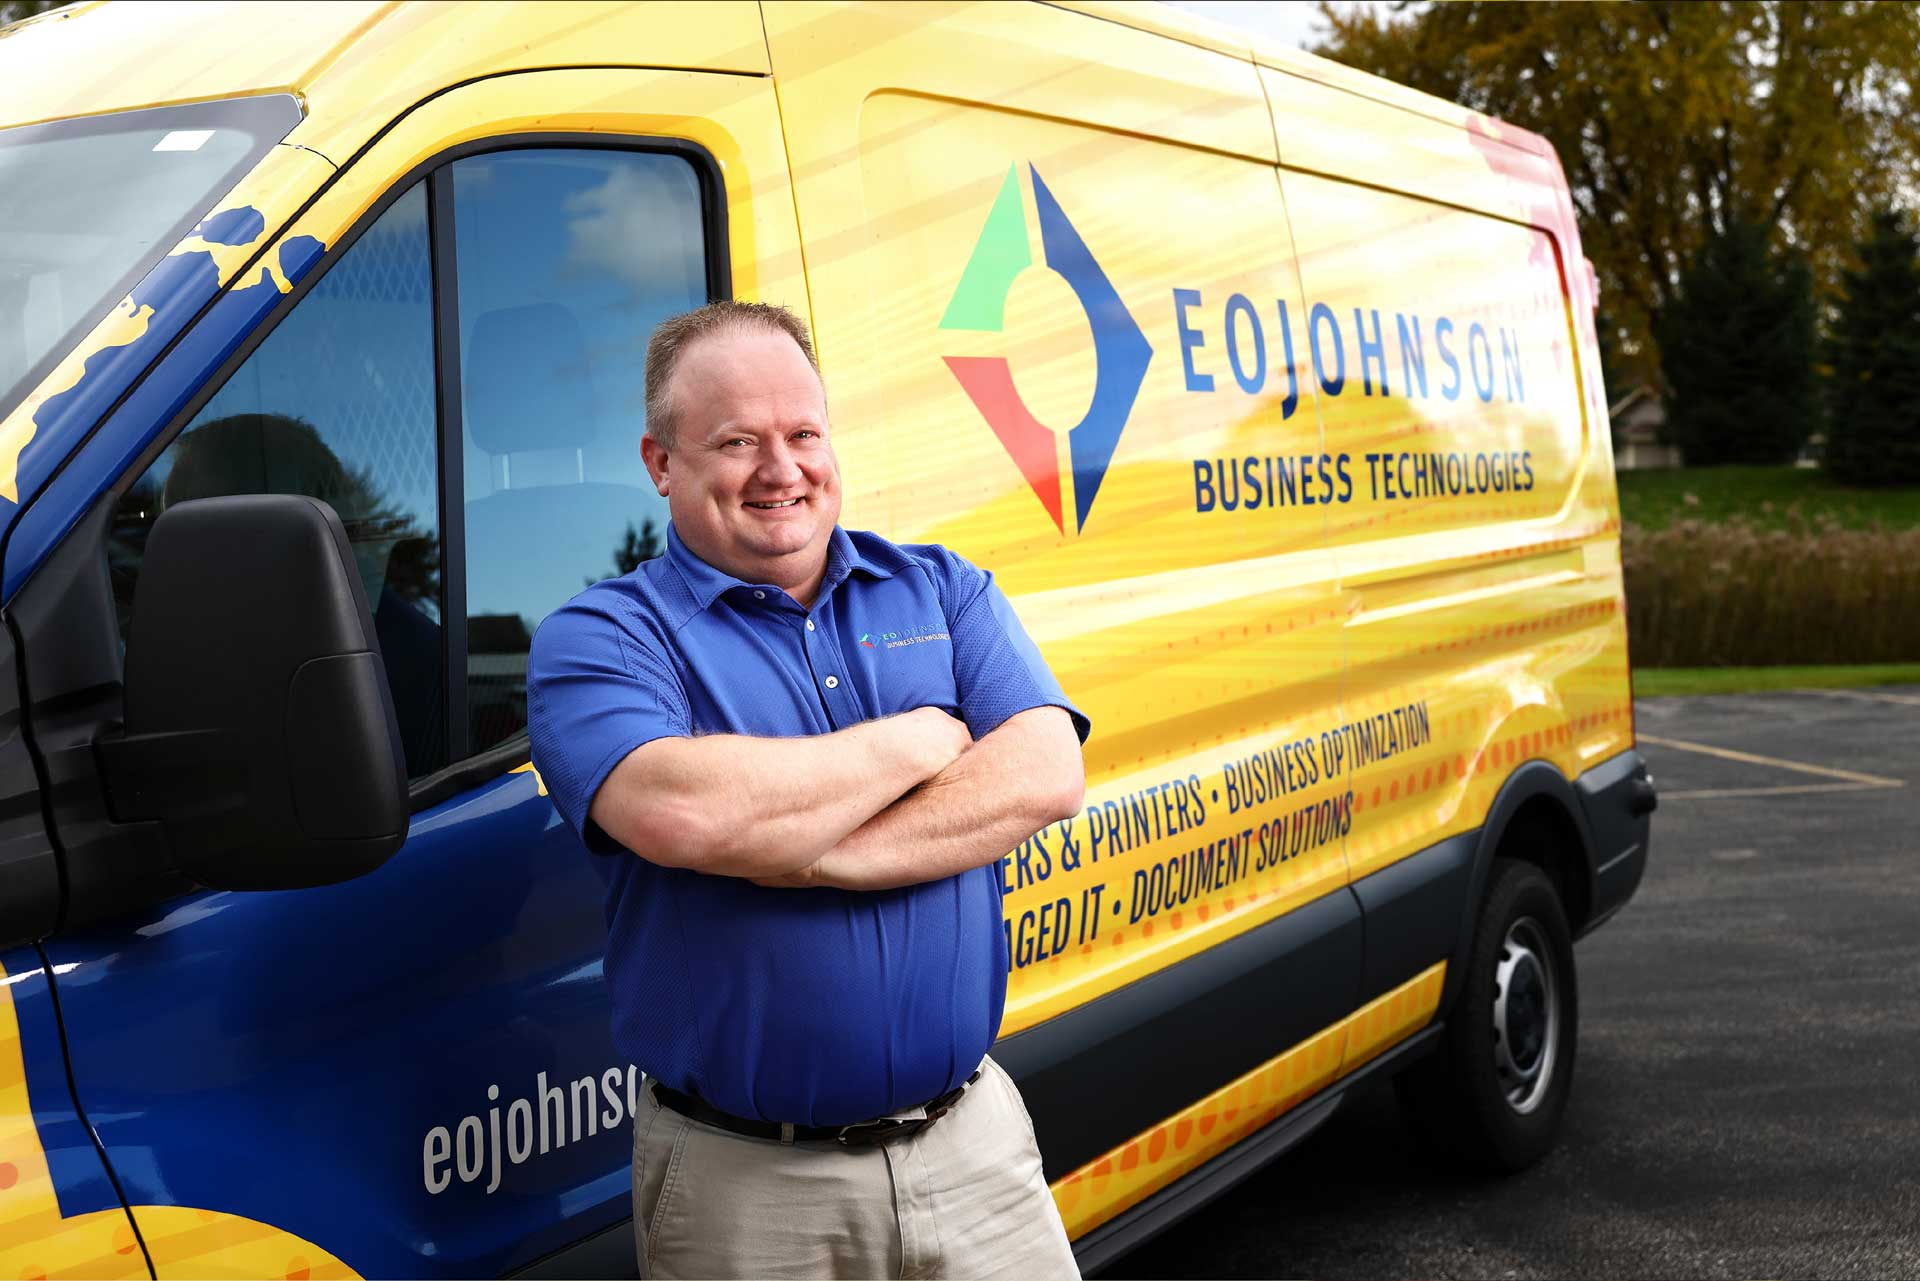 eo_johnson_employee_smiling_by_print_service_van